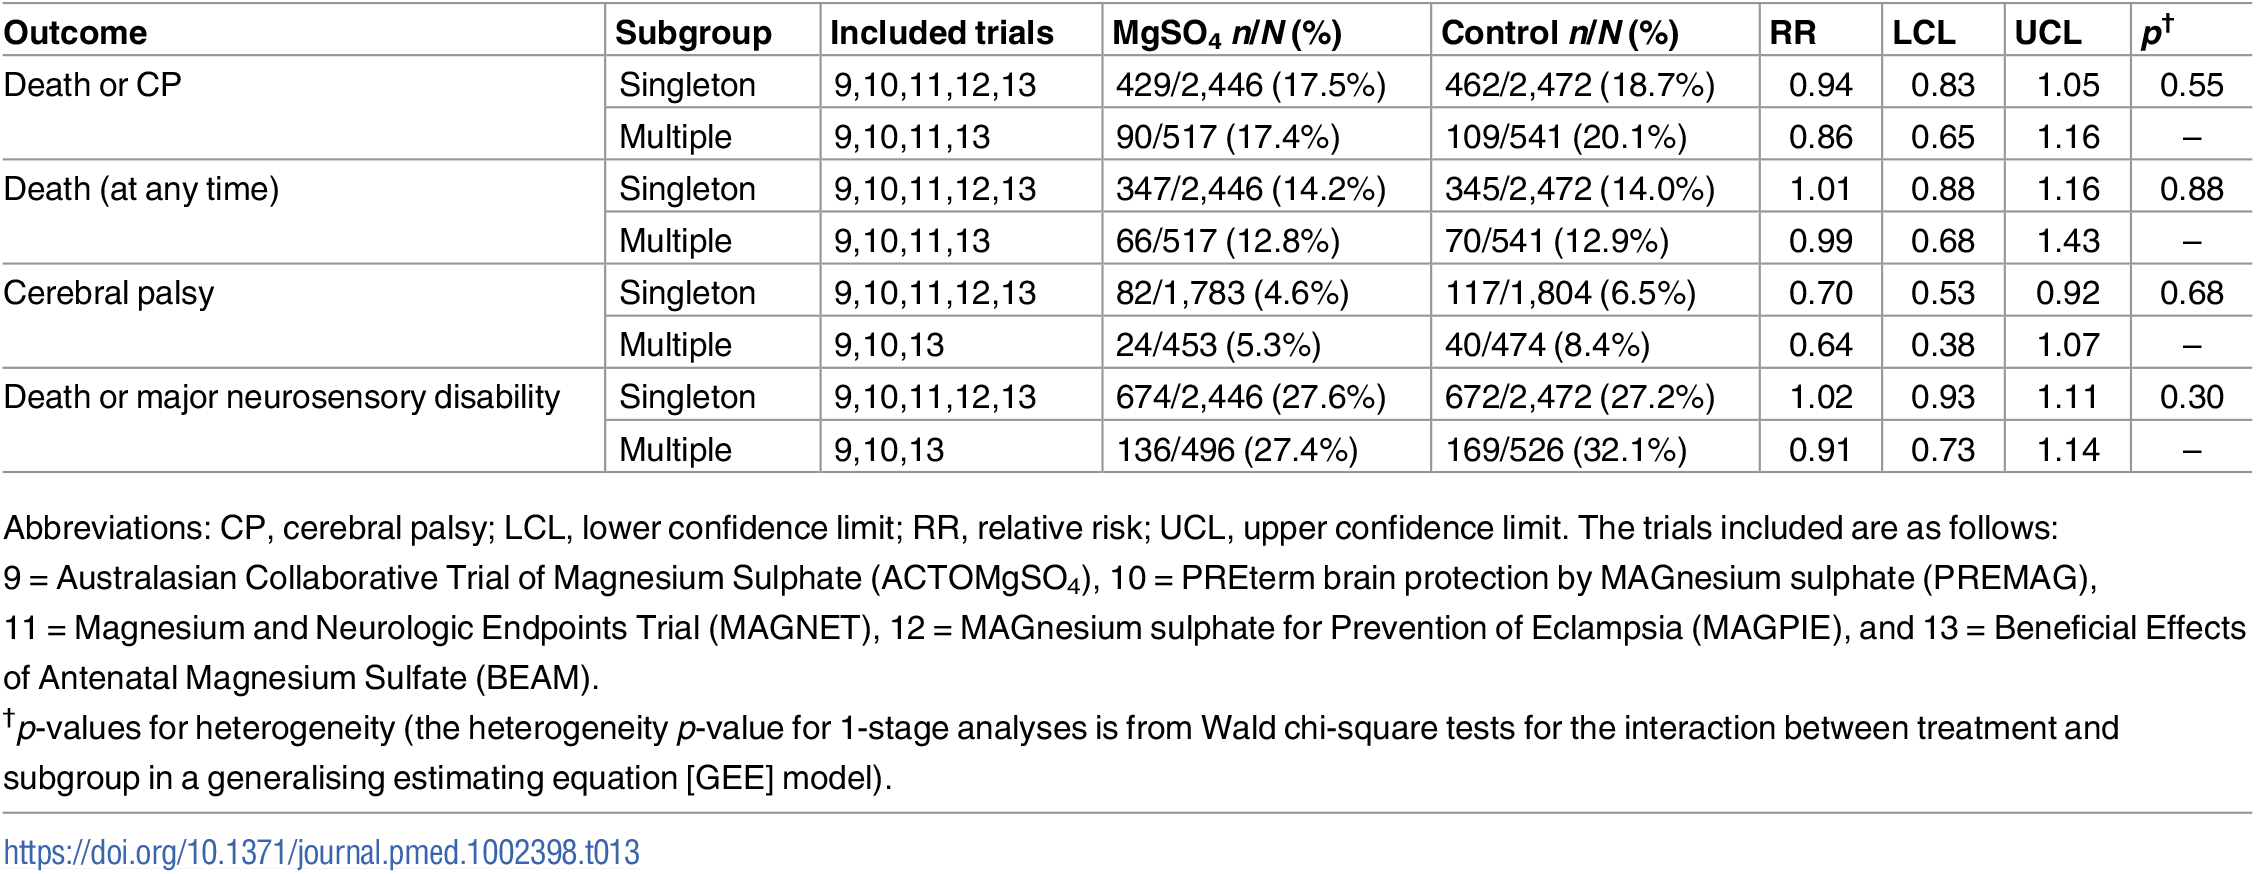 Treatment effects among the subgroups considered by multiple birth.